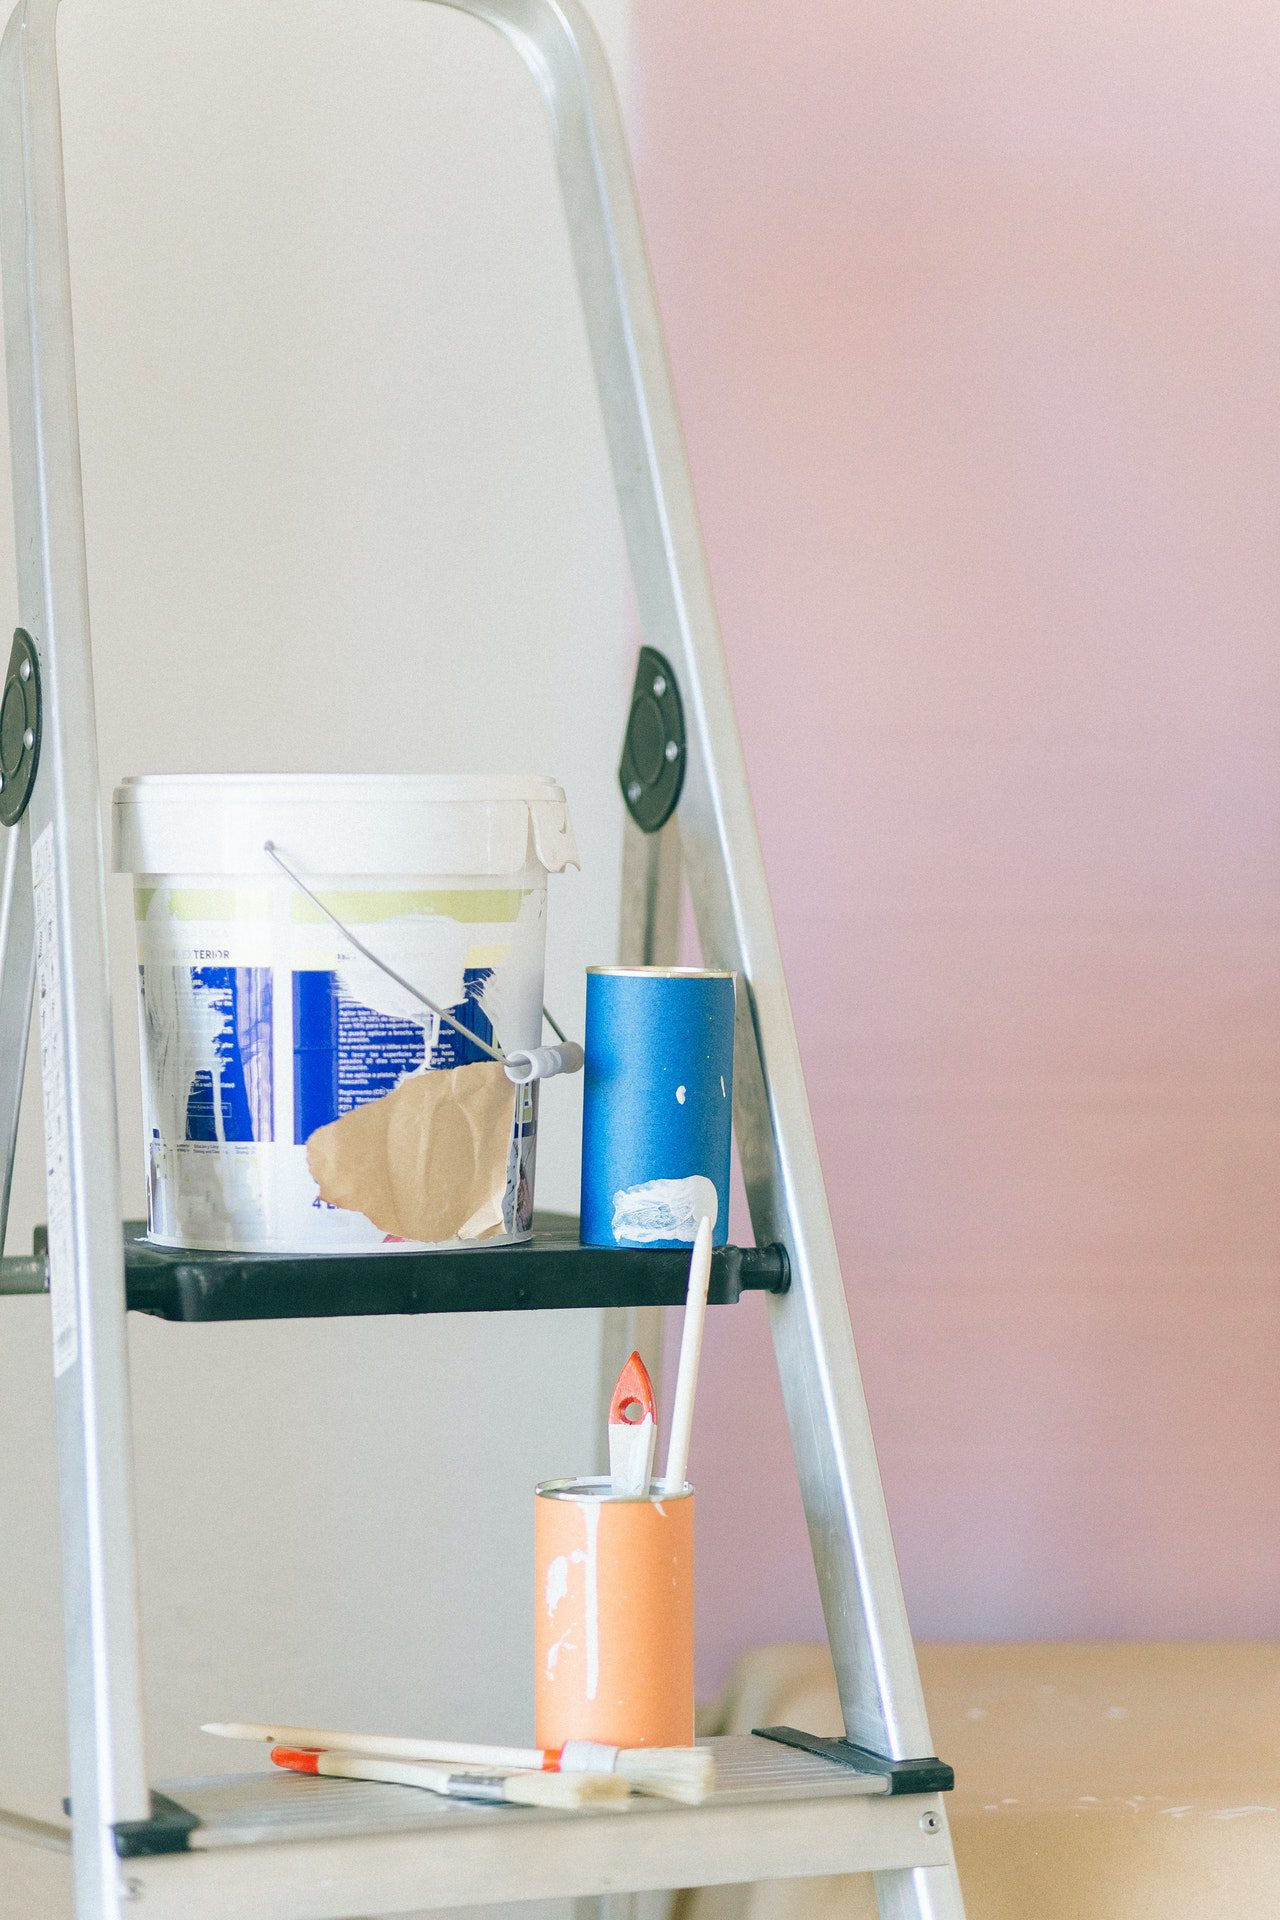 From Old to New: 3 DIY Projects to Improve Your Home